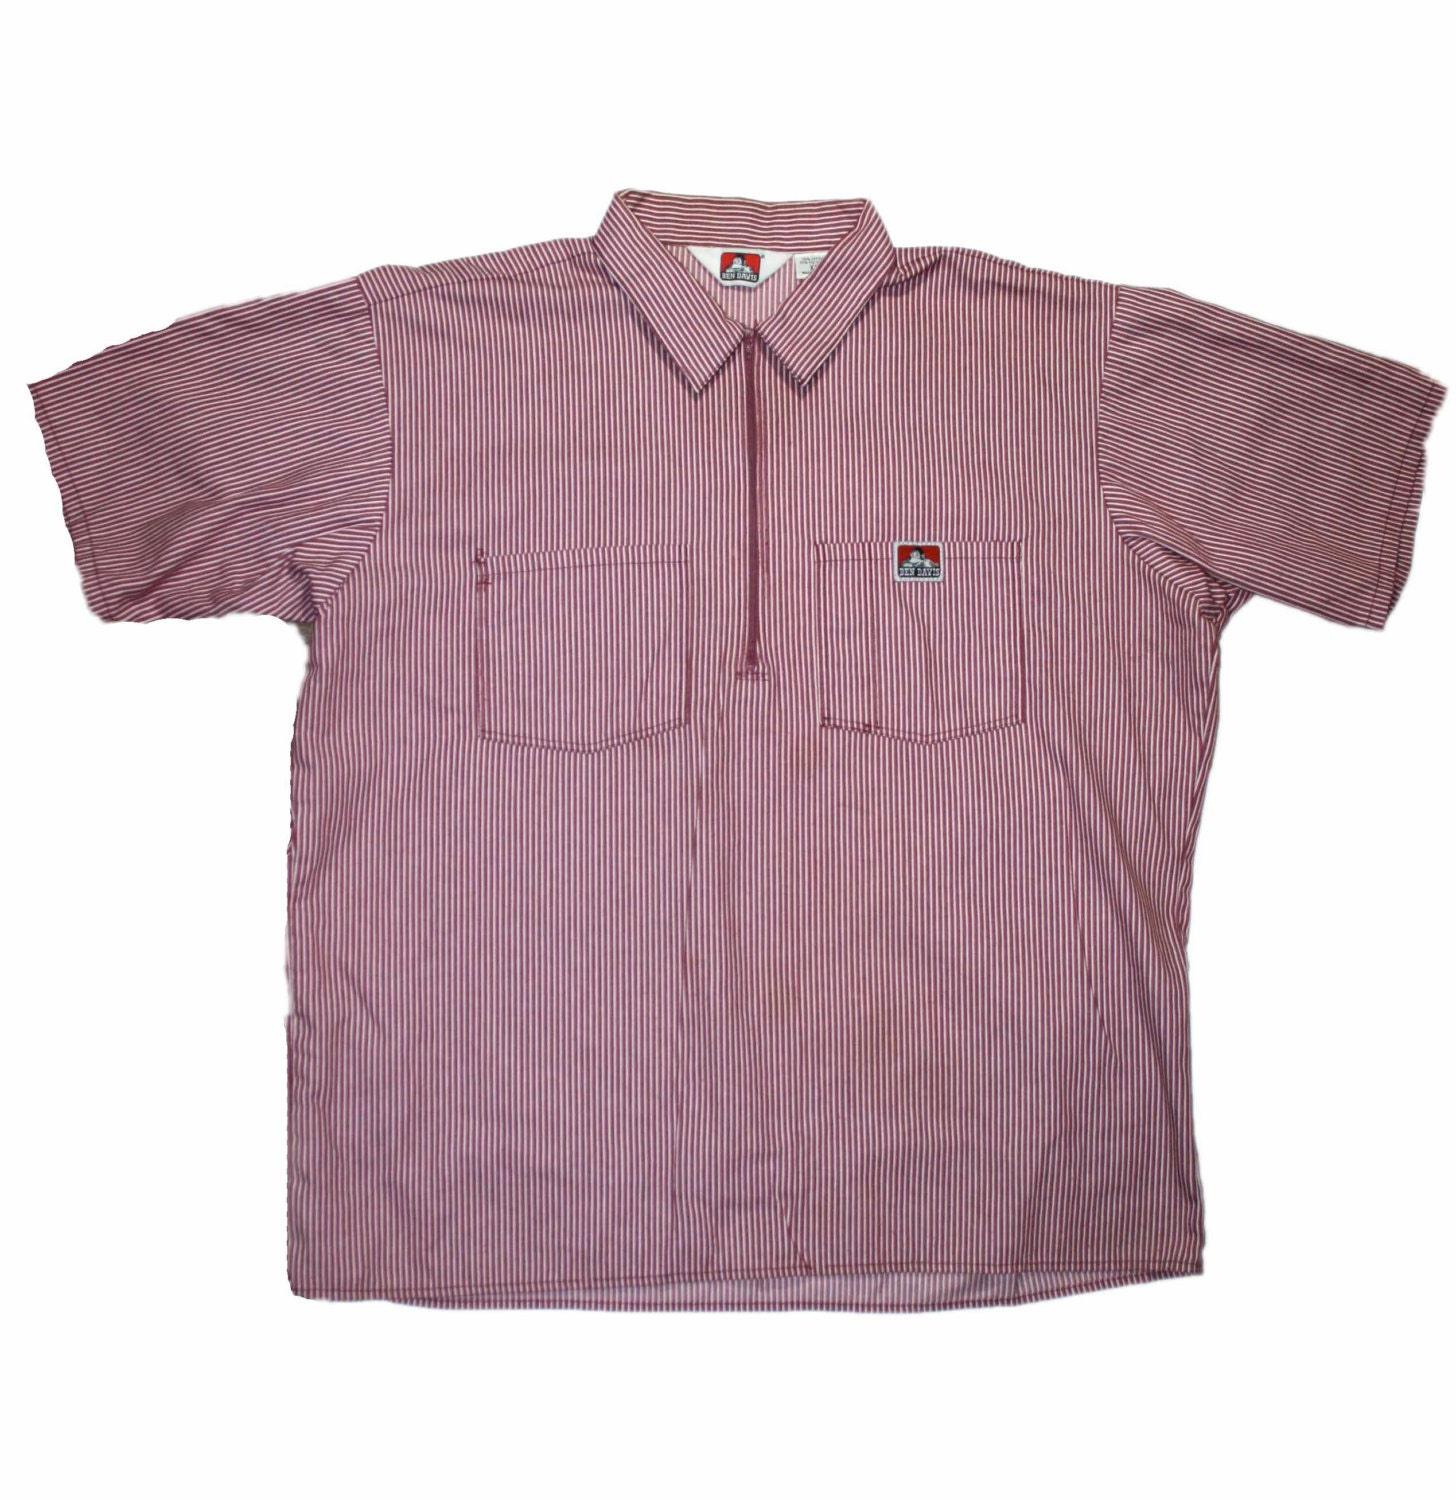 Vintage 90s ben davis work shirt made in usa by for Usa made work shirts